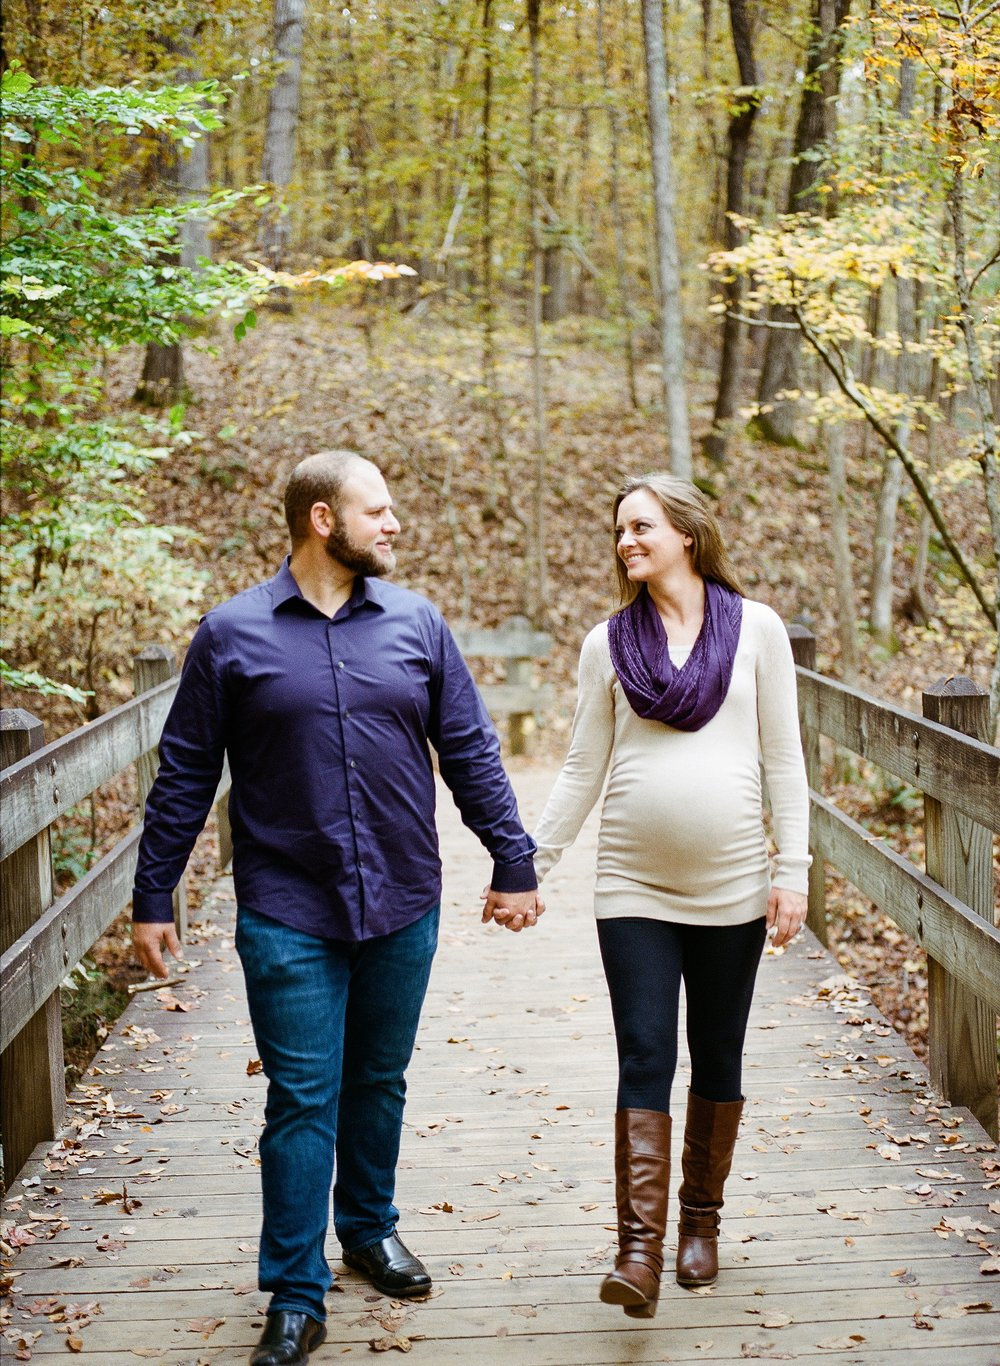 atlanta-sweetwater-creek-fine-art-film-maternity-photographer-amandadavid-43.jpg